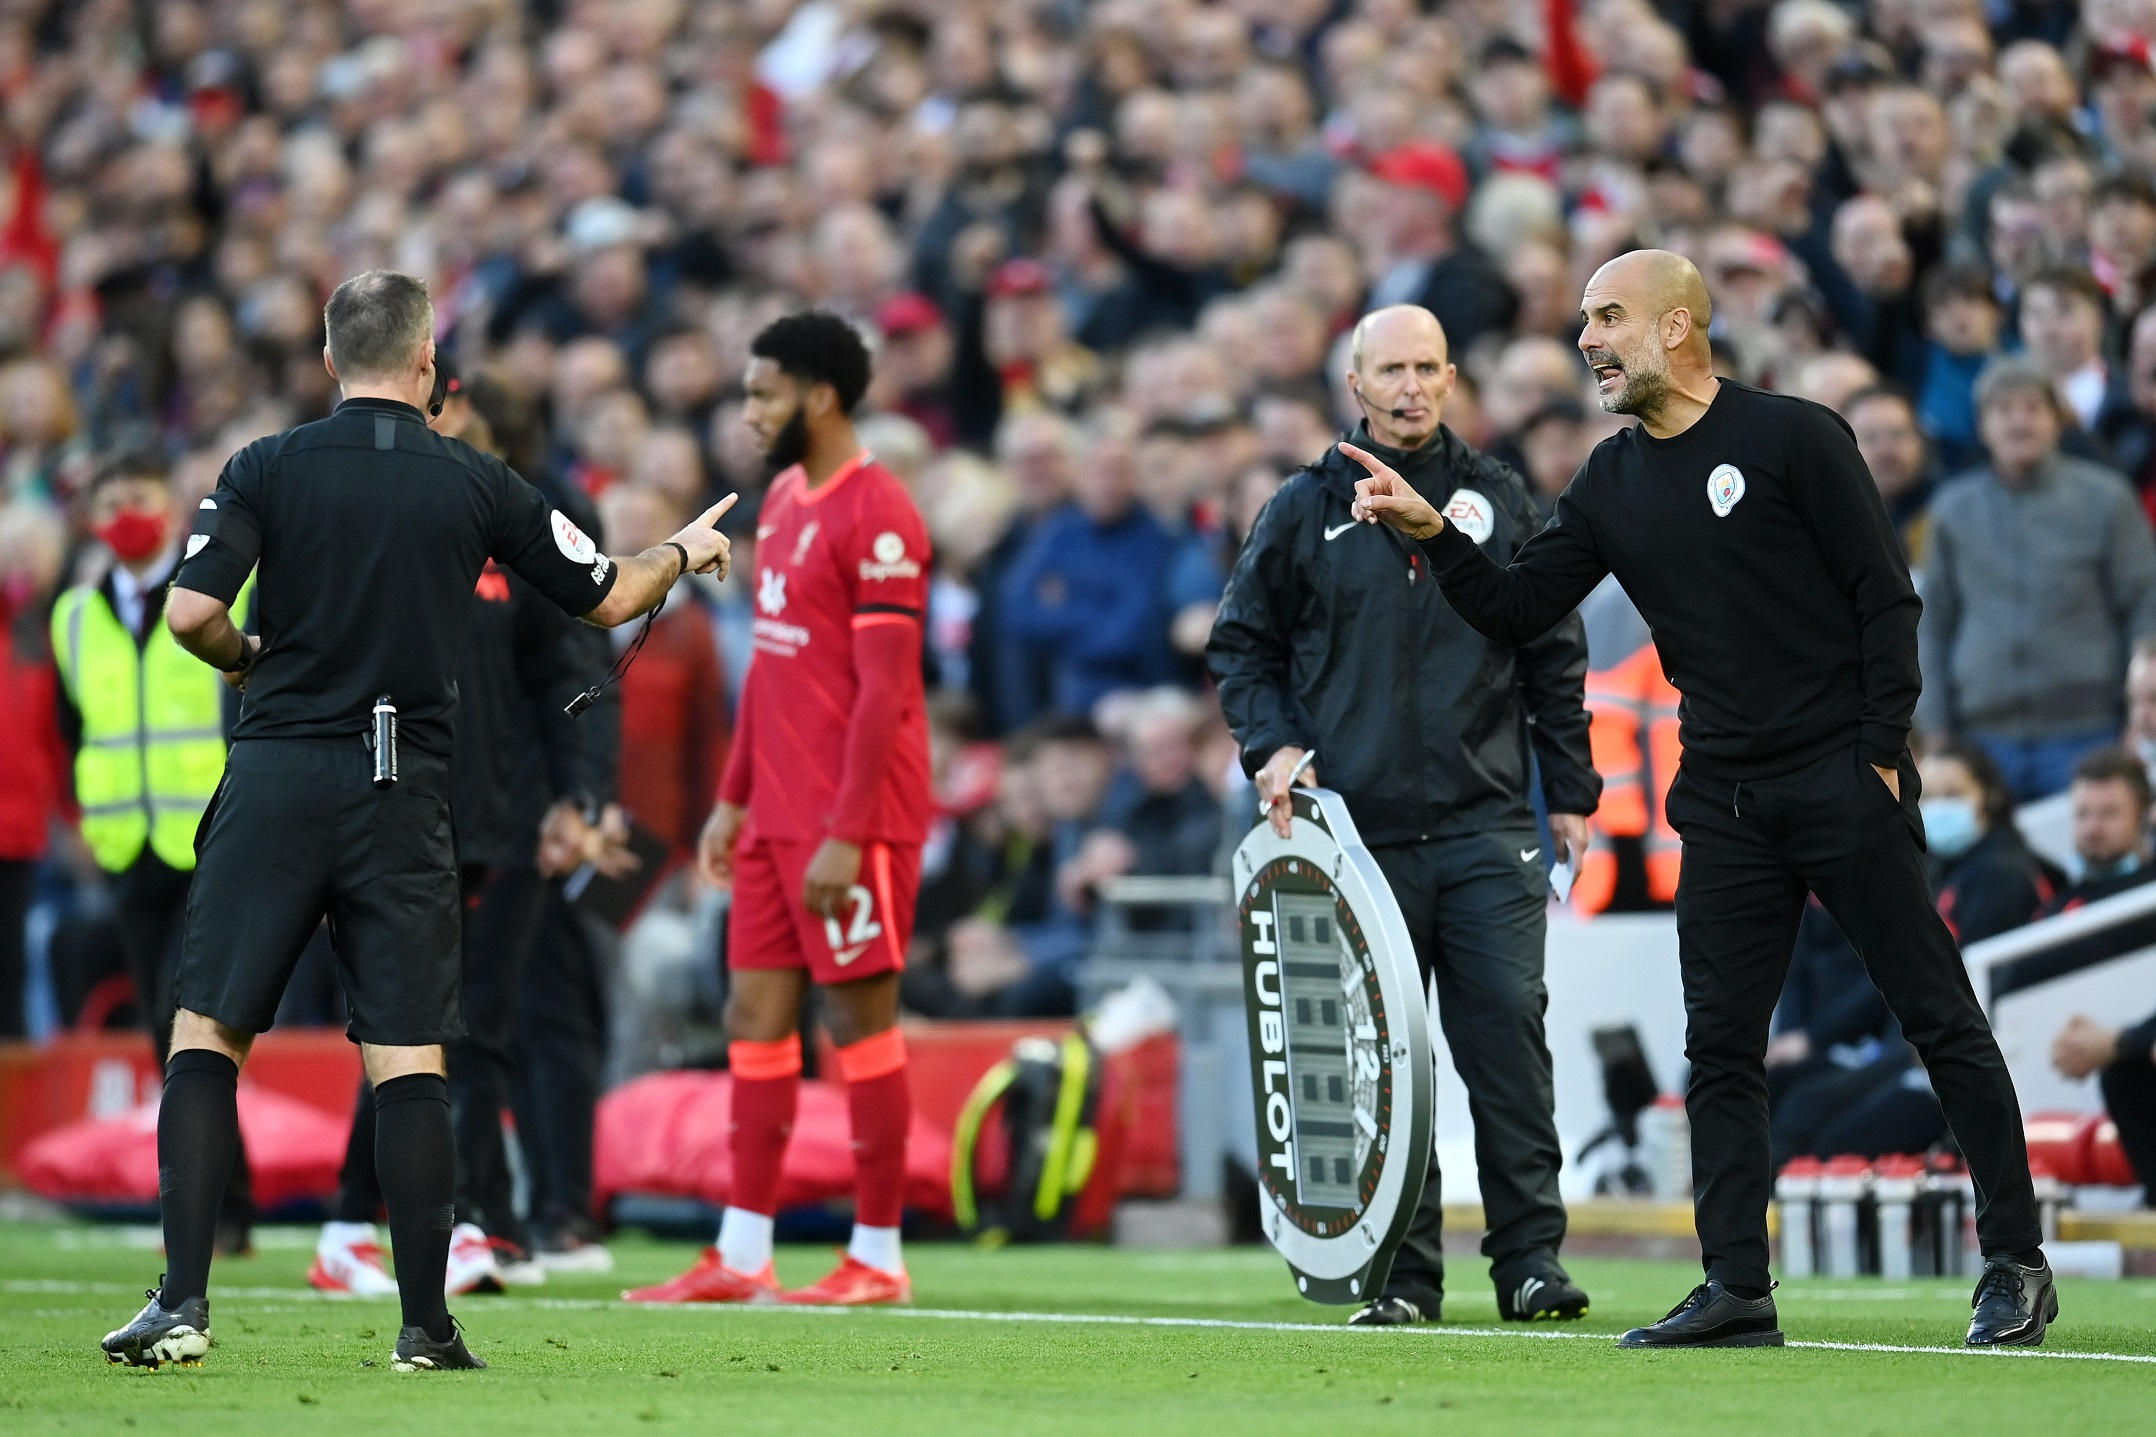 'It's Anfield, it's Old Trafford' – Pep Guardiola insinuates officials provided biased decision-making in Liverpool's 2-2 draw with Man City